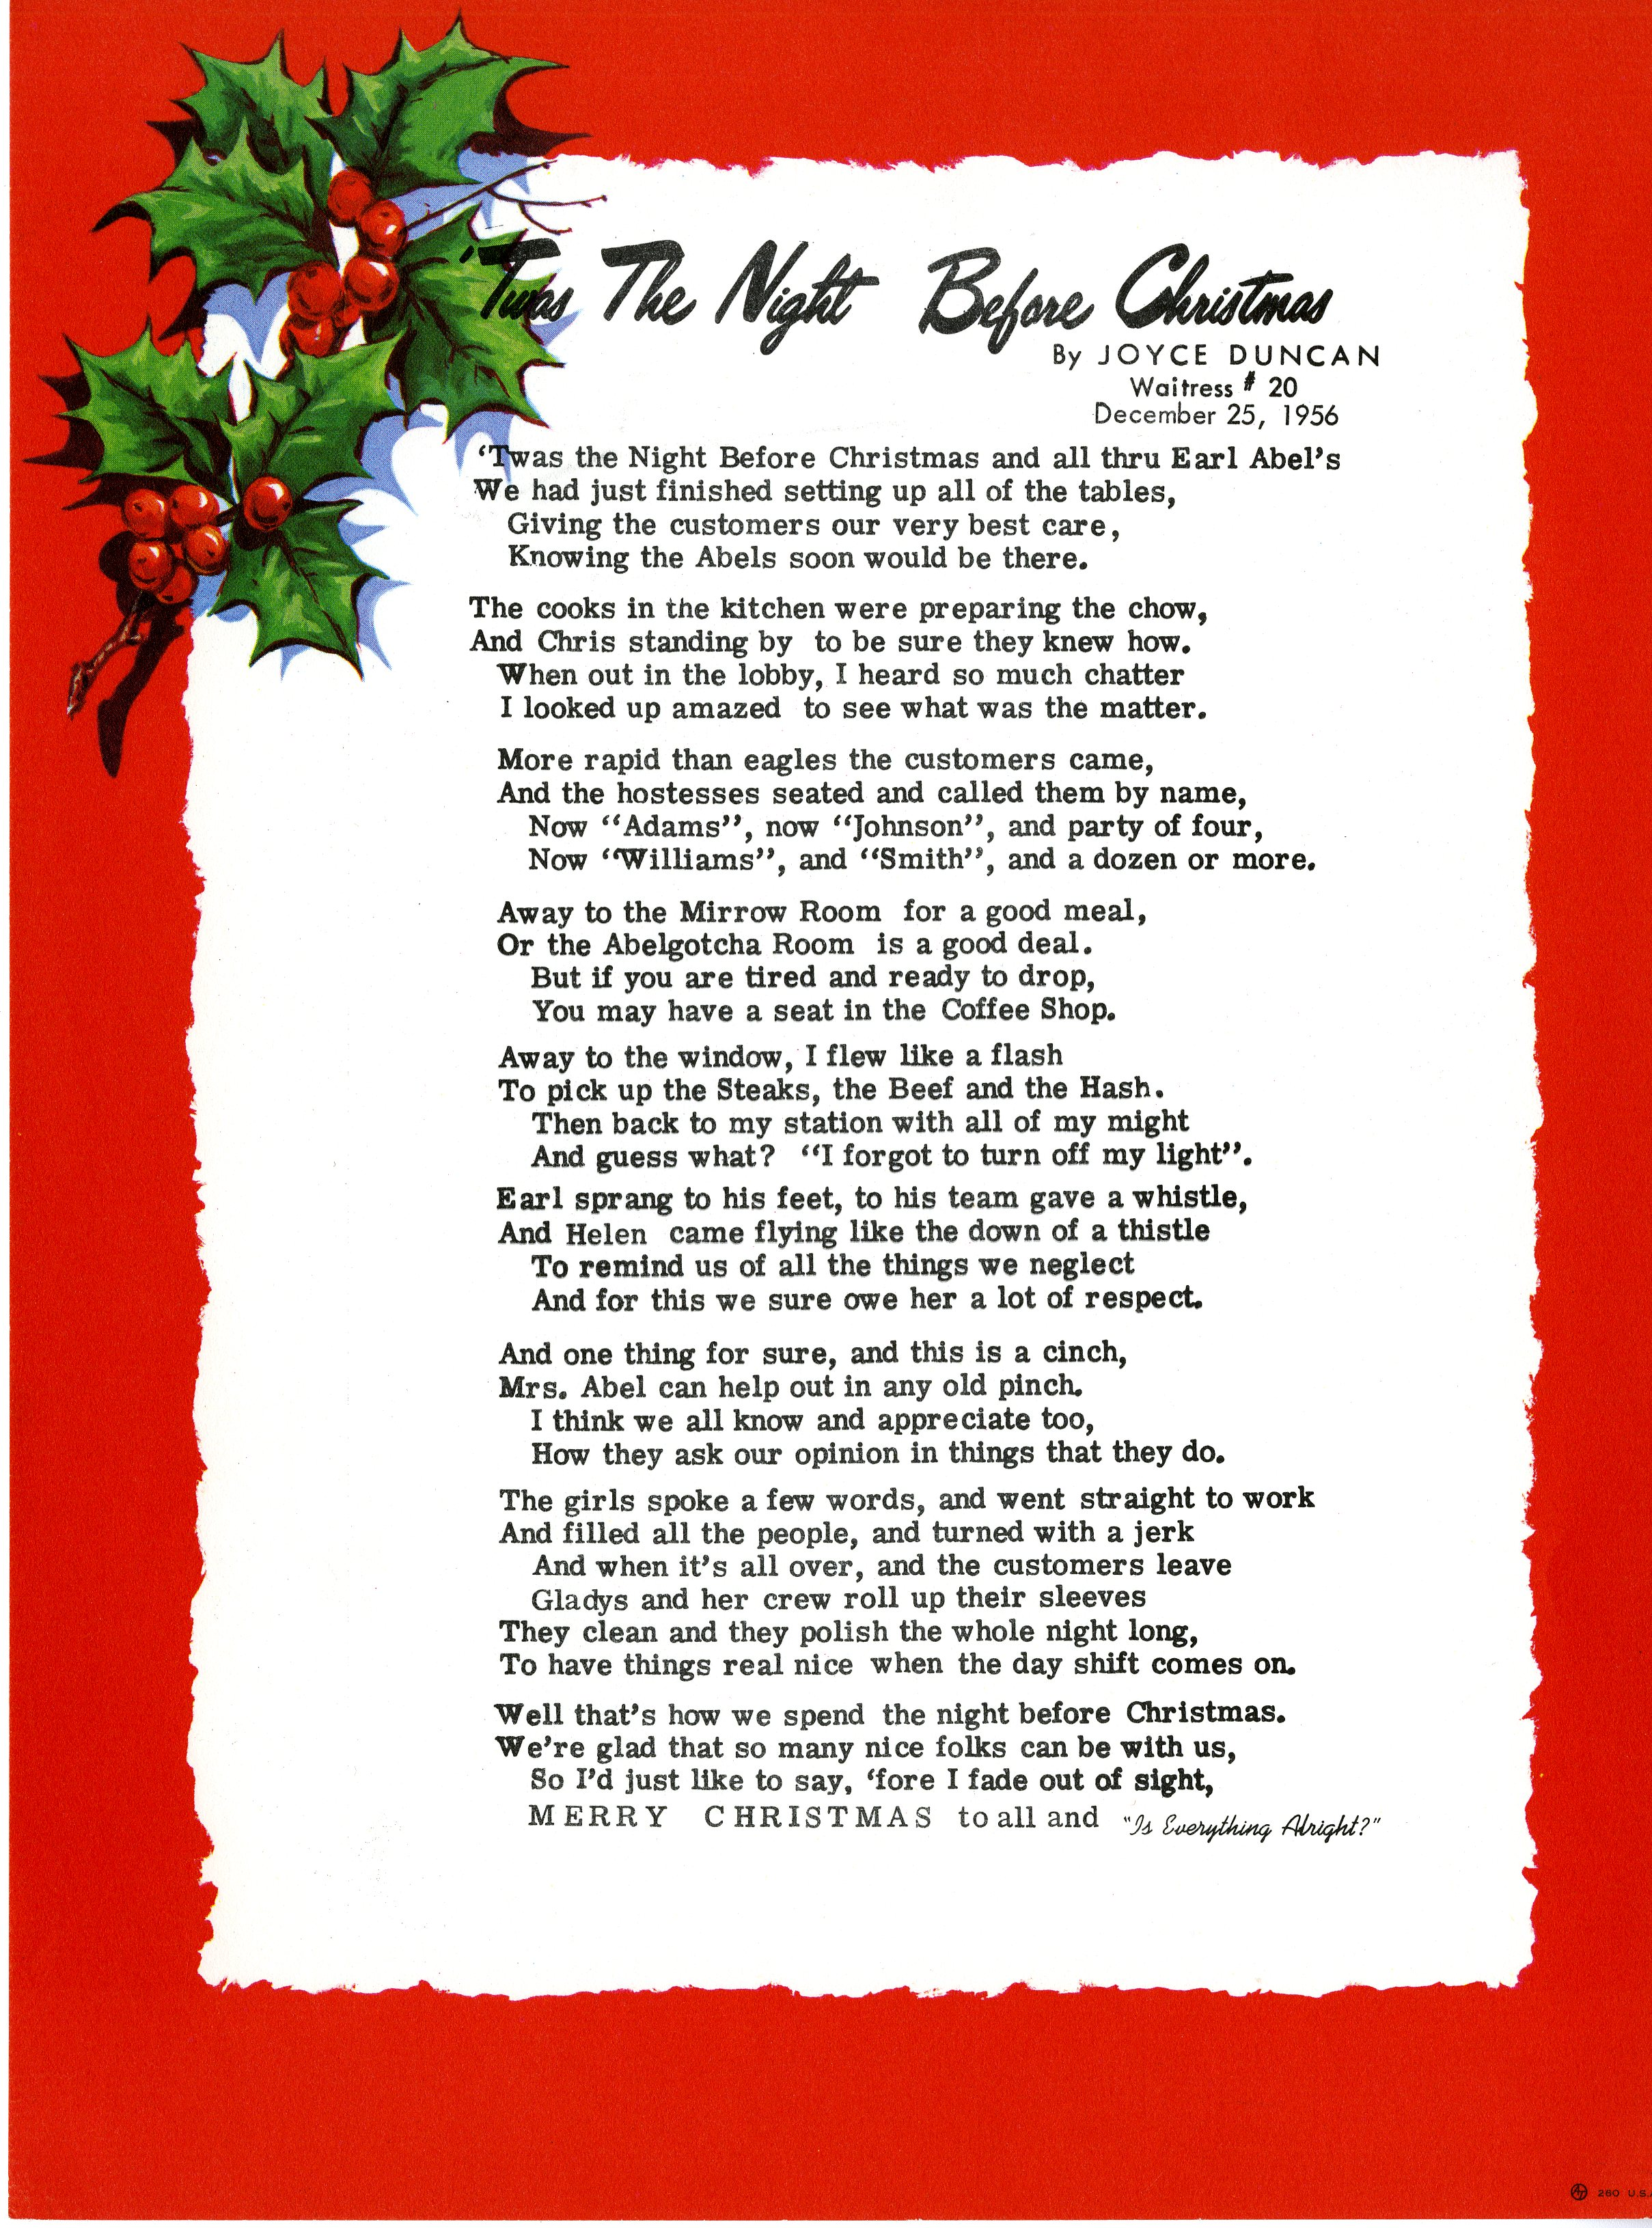 twas the night before christmas parody text